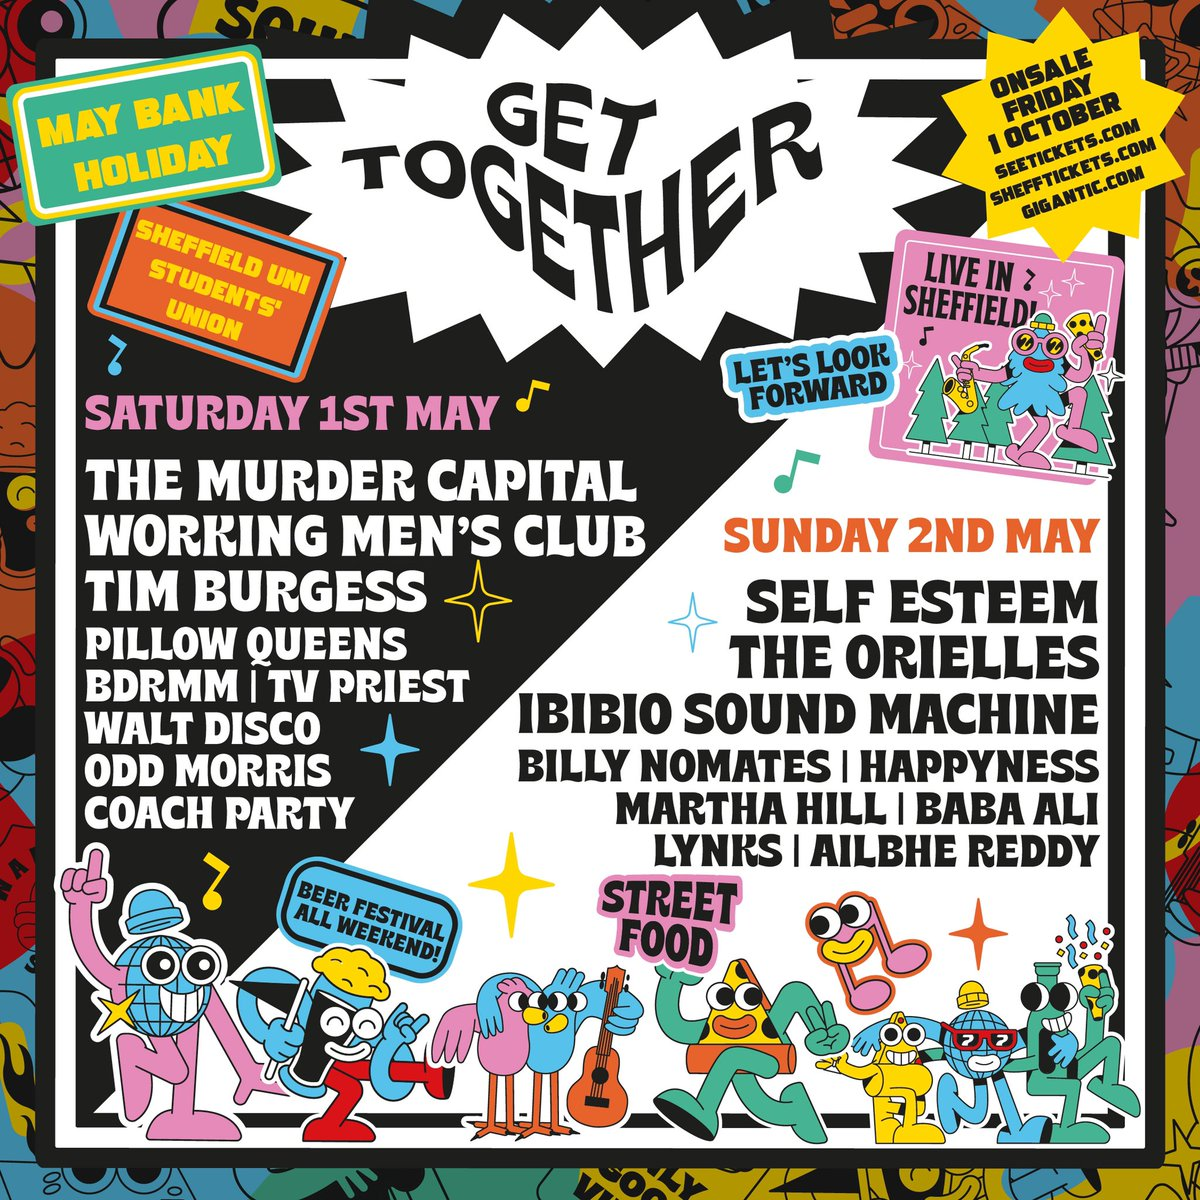 Looking forward to playing @gettogetherfest in Sheffield next year. Ace line up with @MurderCapital_ @work1ngmensclub @smellybdrmm @TheOrielles @SELFESTEEM___ @IbibioSound & more. Pre-sale Thurs 10am. General sale 10am Friday seetickets.com/register/previ…